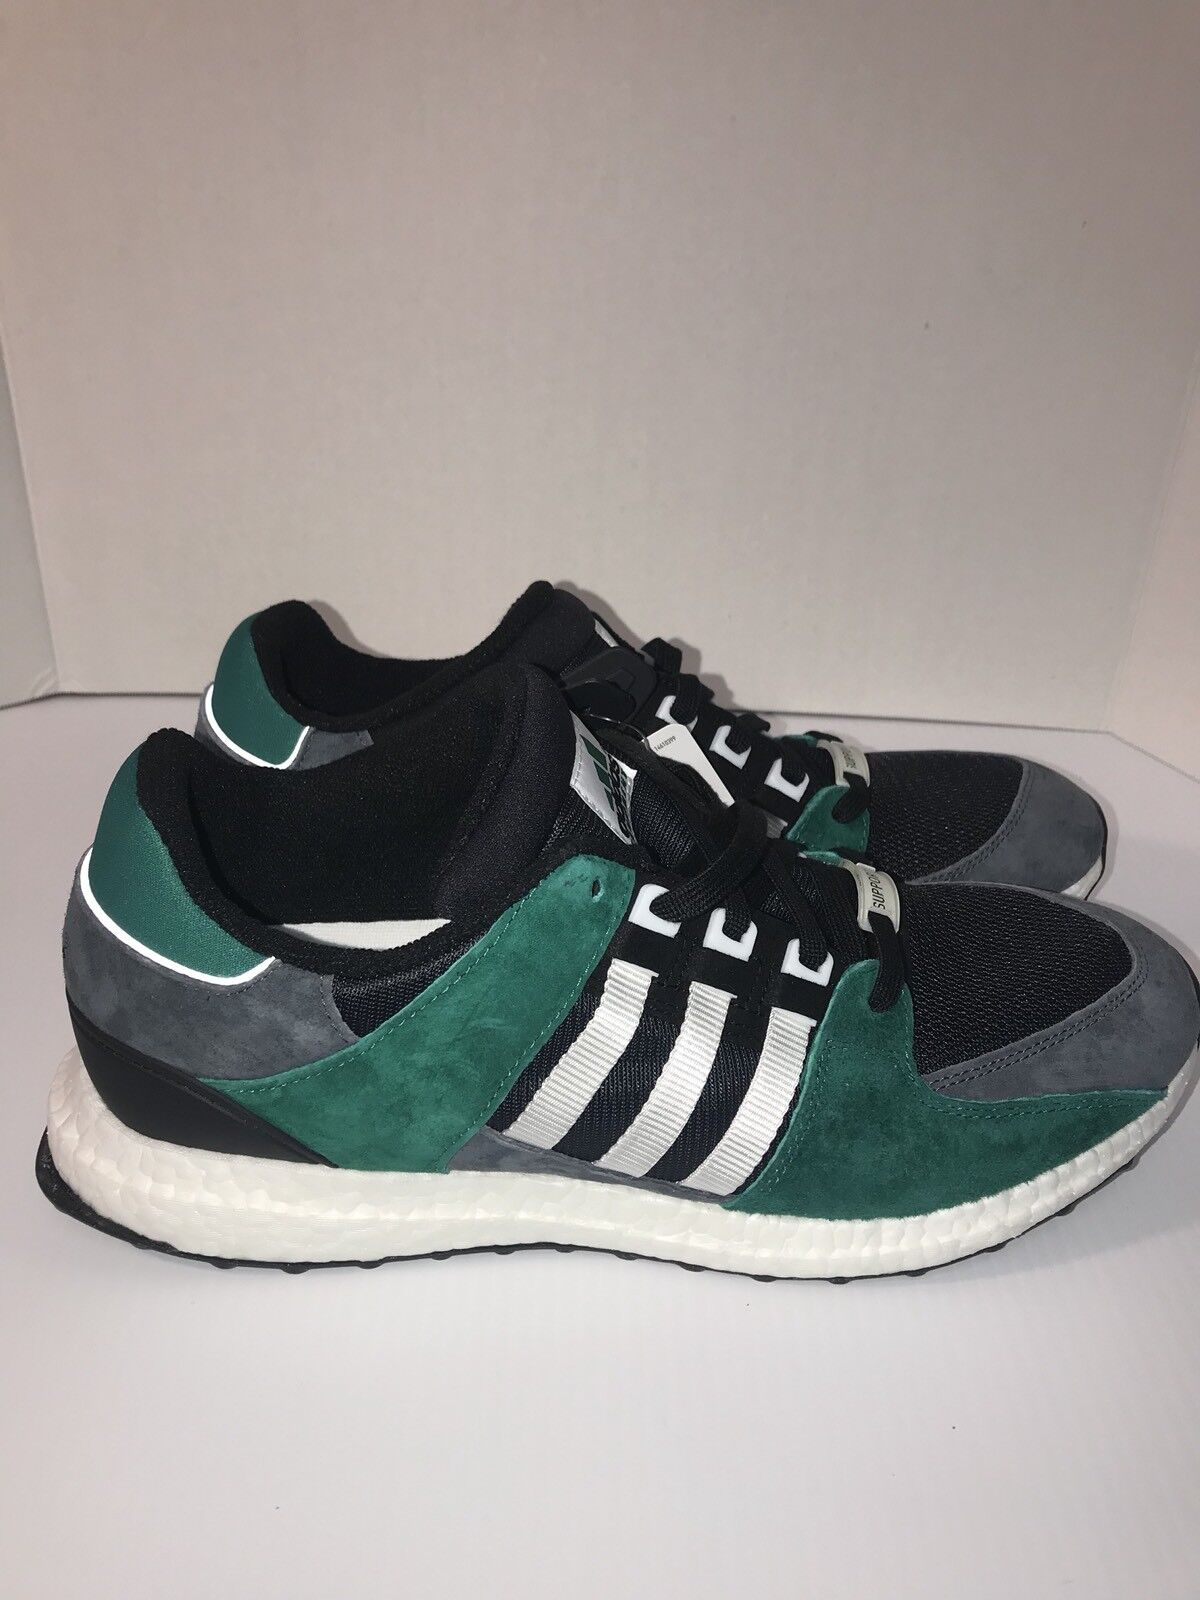 Men's Adidas EQT Support 93/16 Boost Green Black White Grey Comfortable